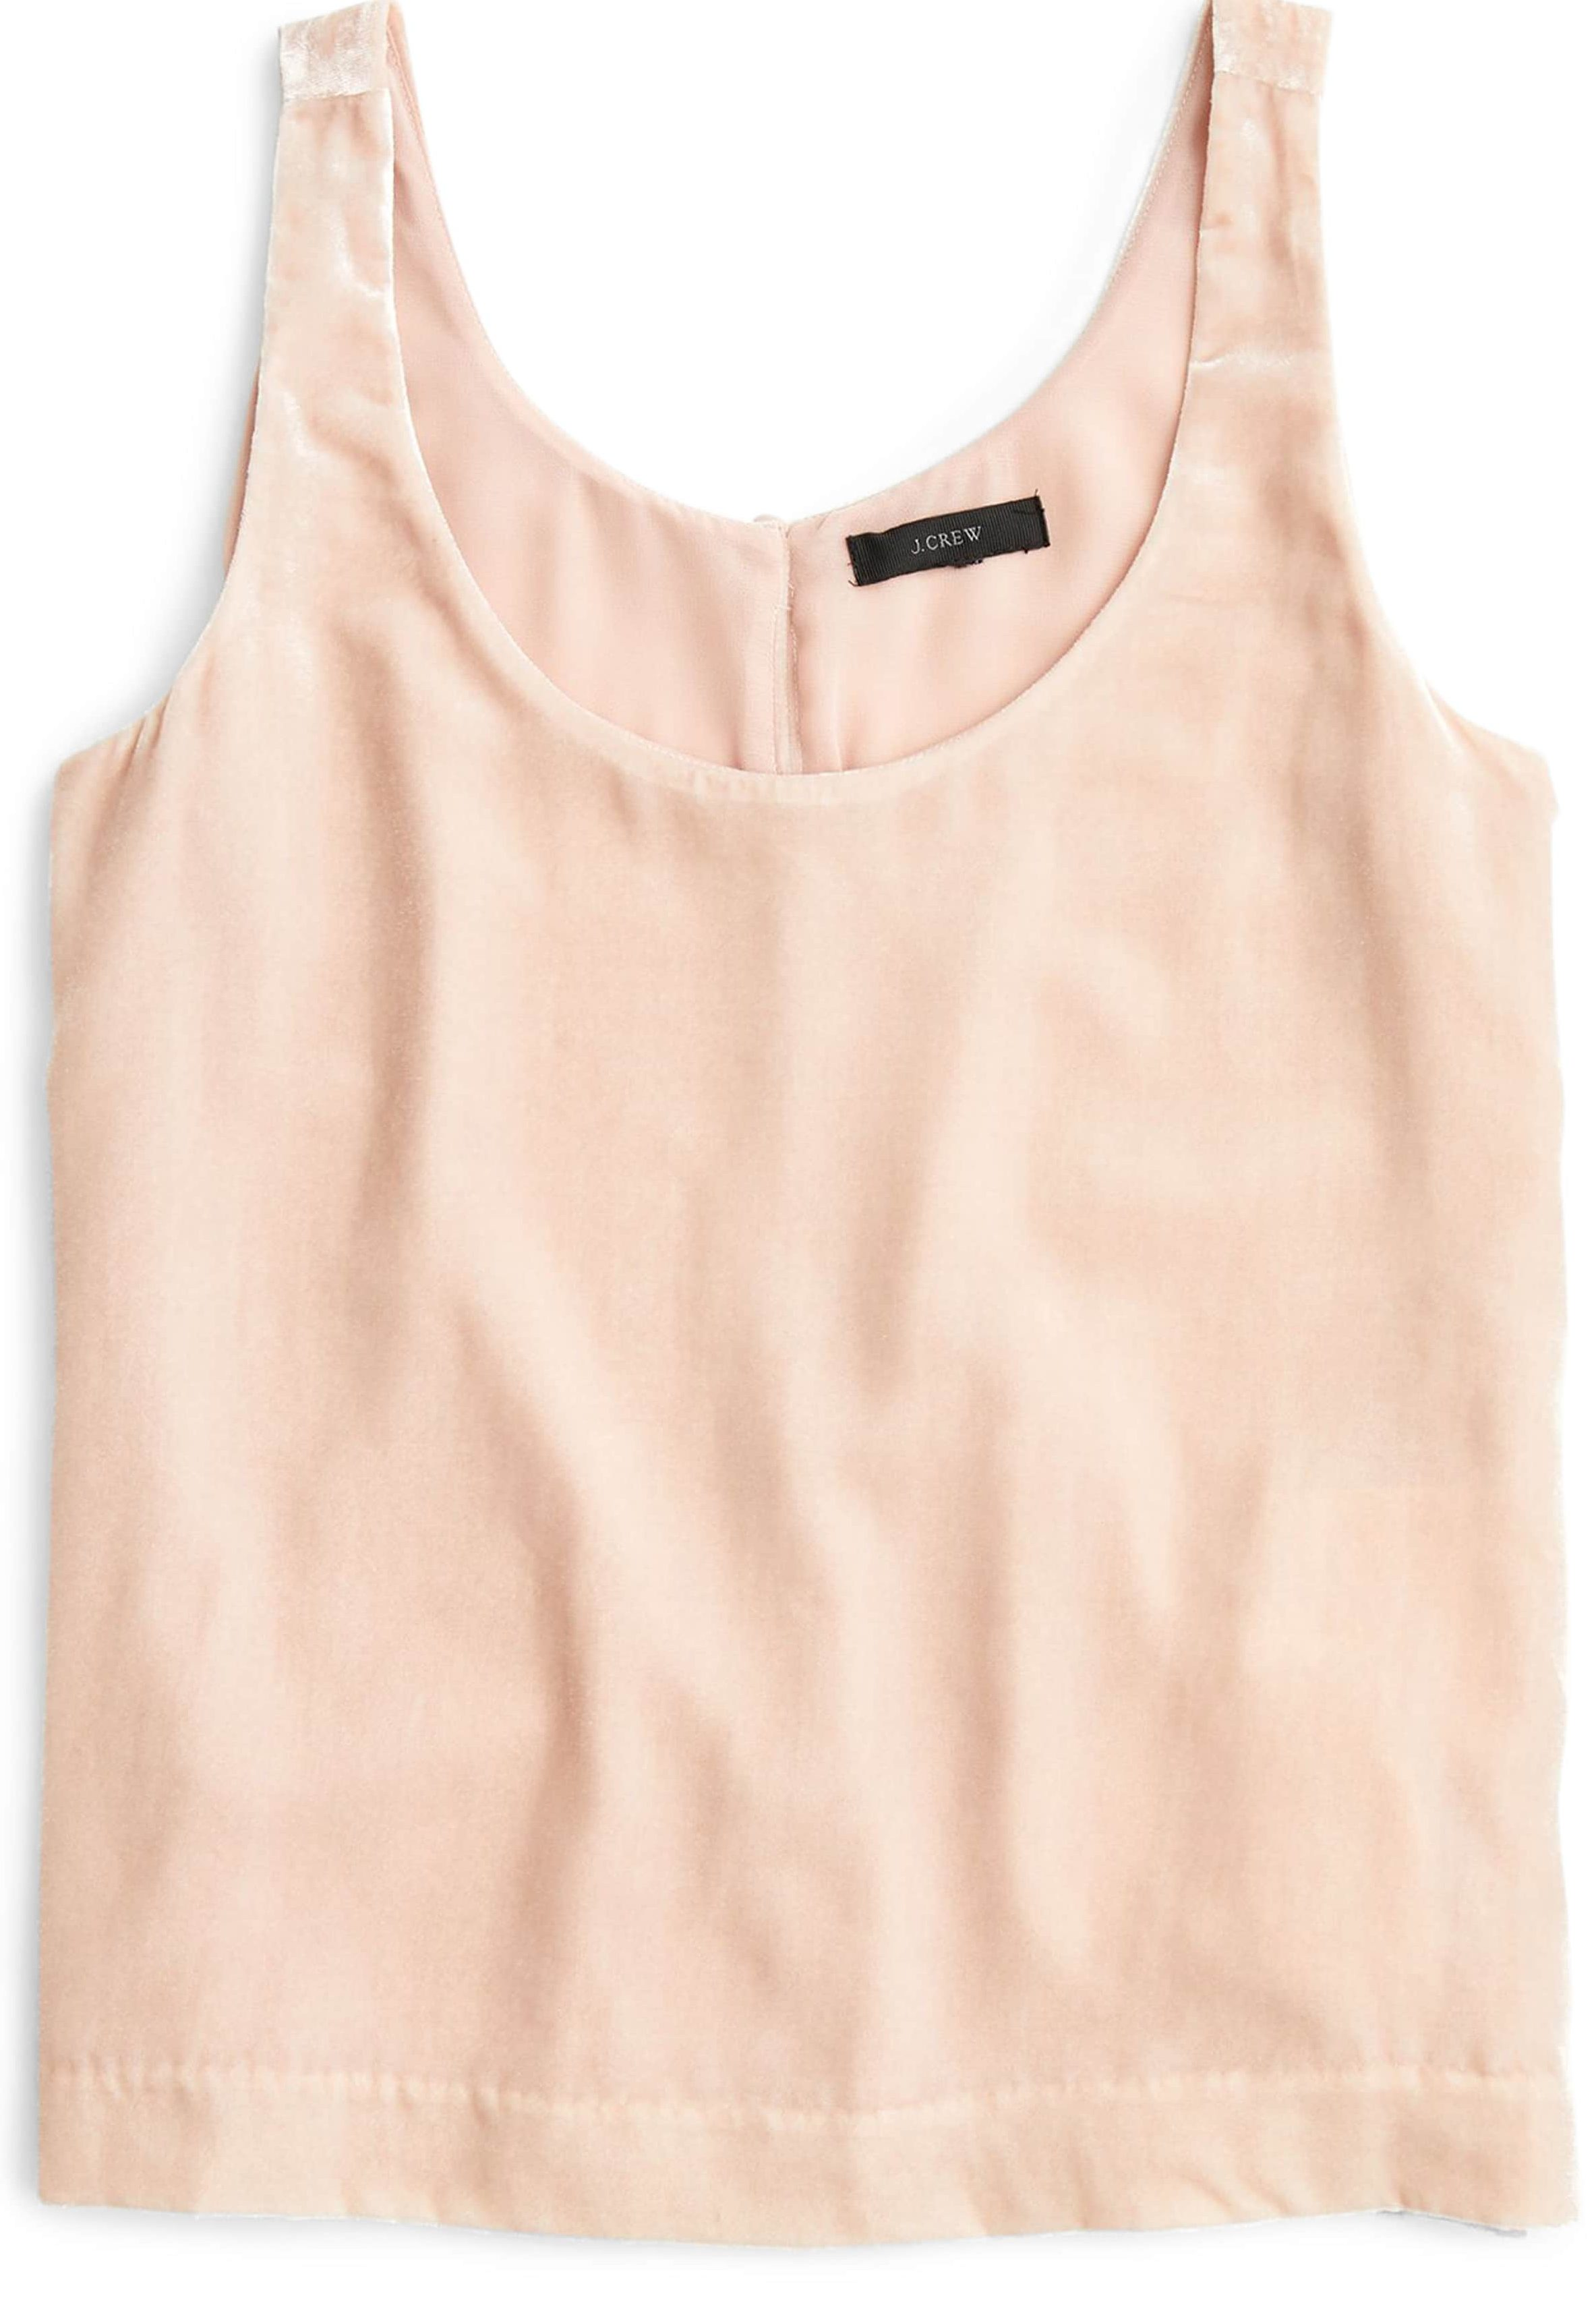 54a93b944cf9cd Shop This J.Crew Velvet Tank Top in Several Colors for Fall